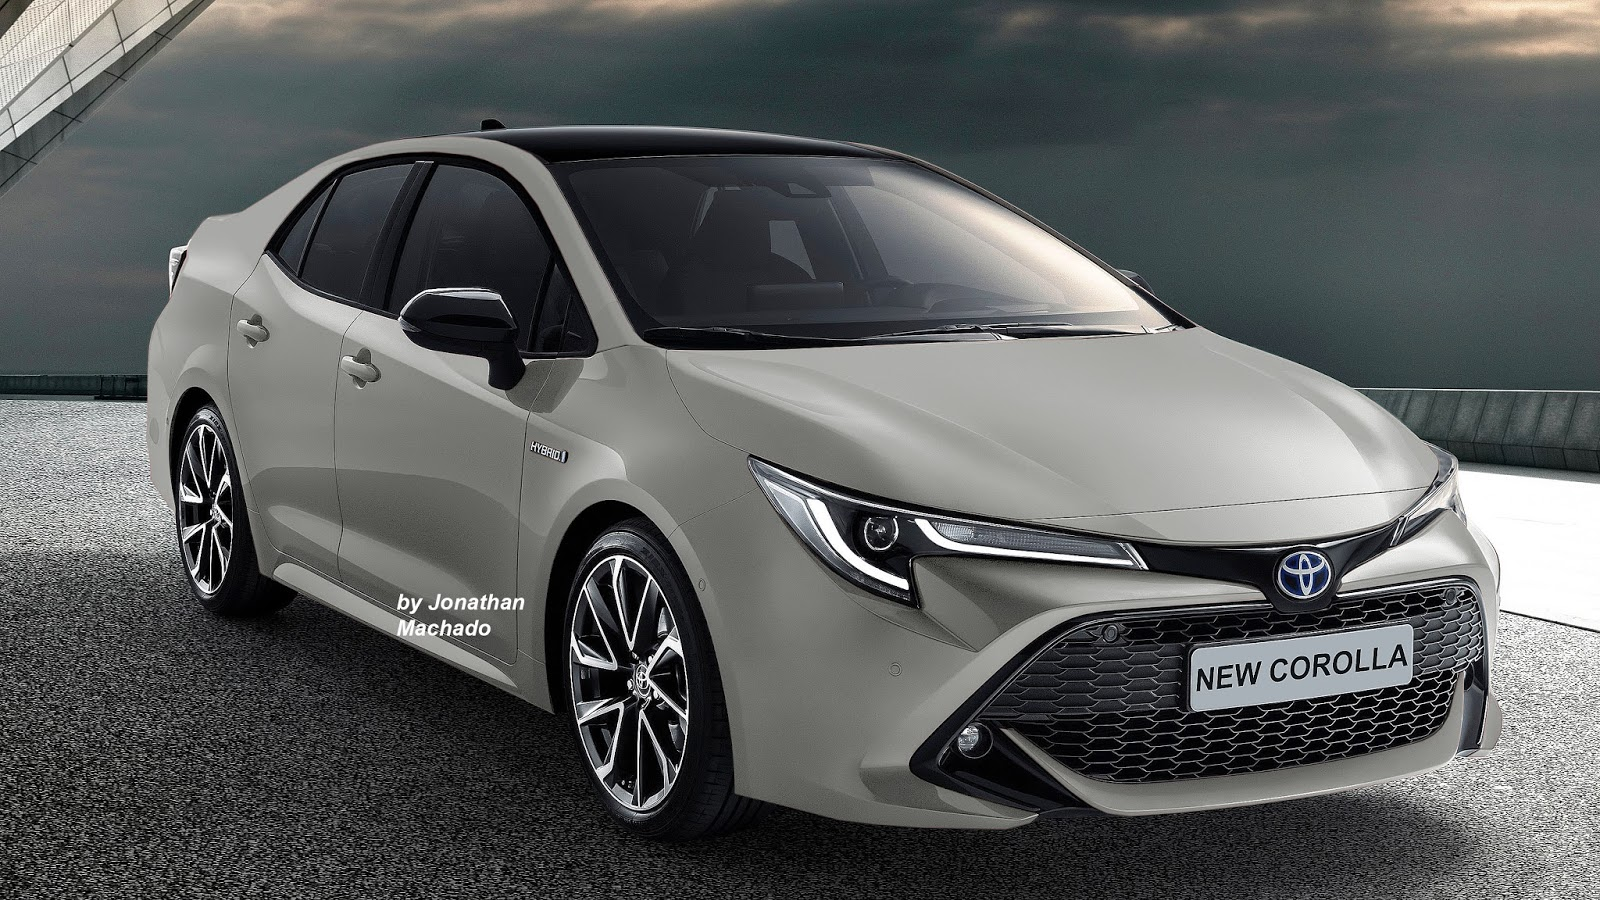 82 The Best 2019 Toyota Altis Exterior